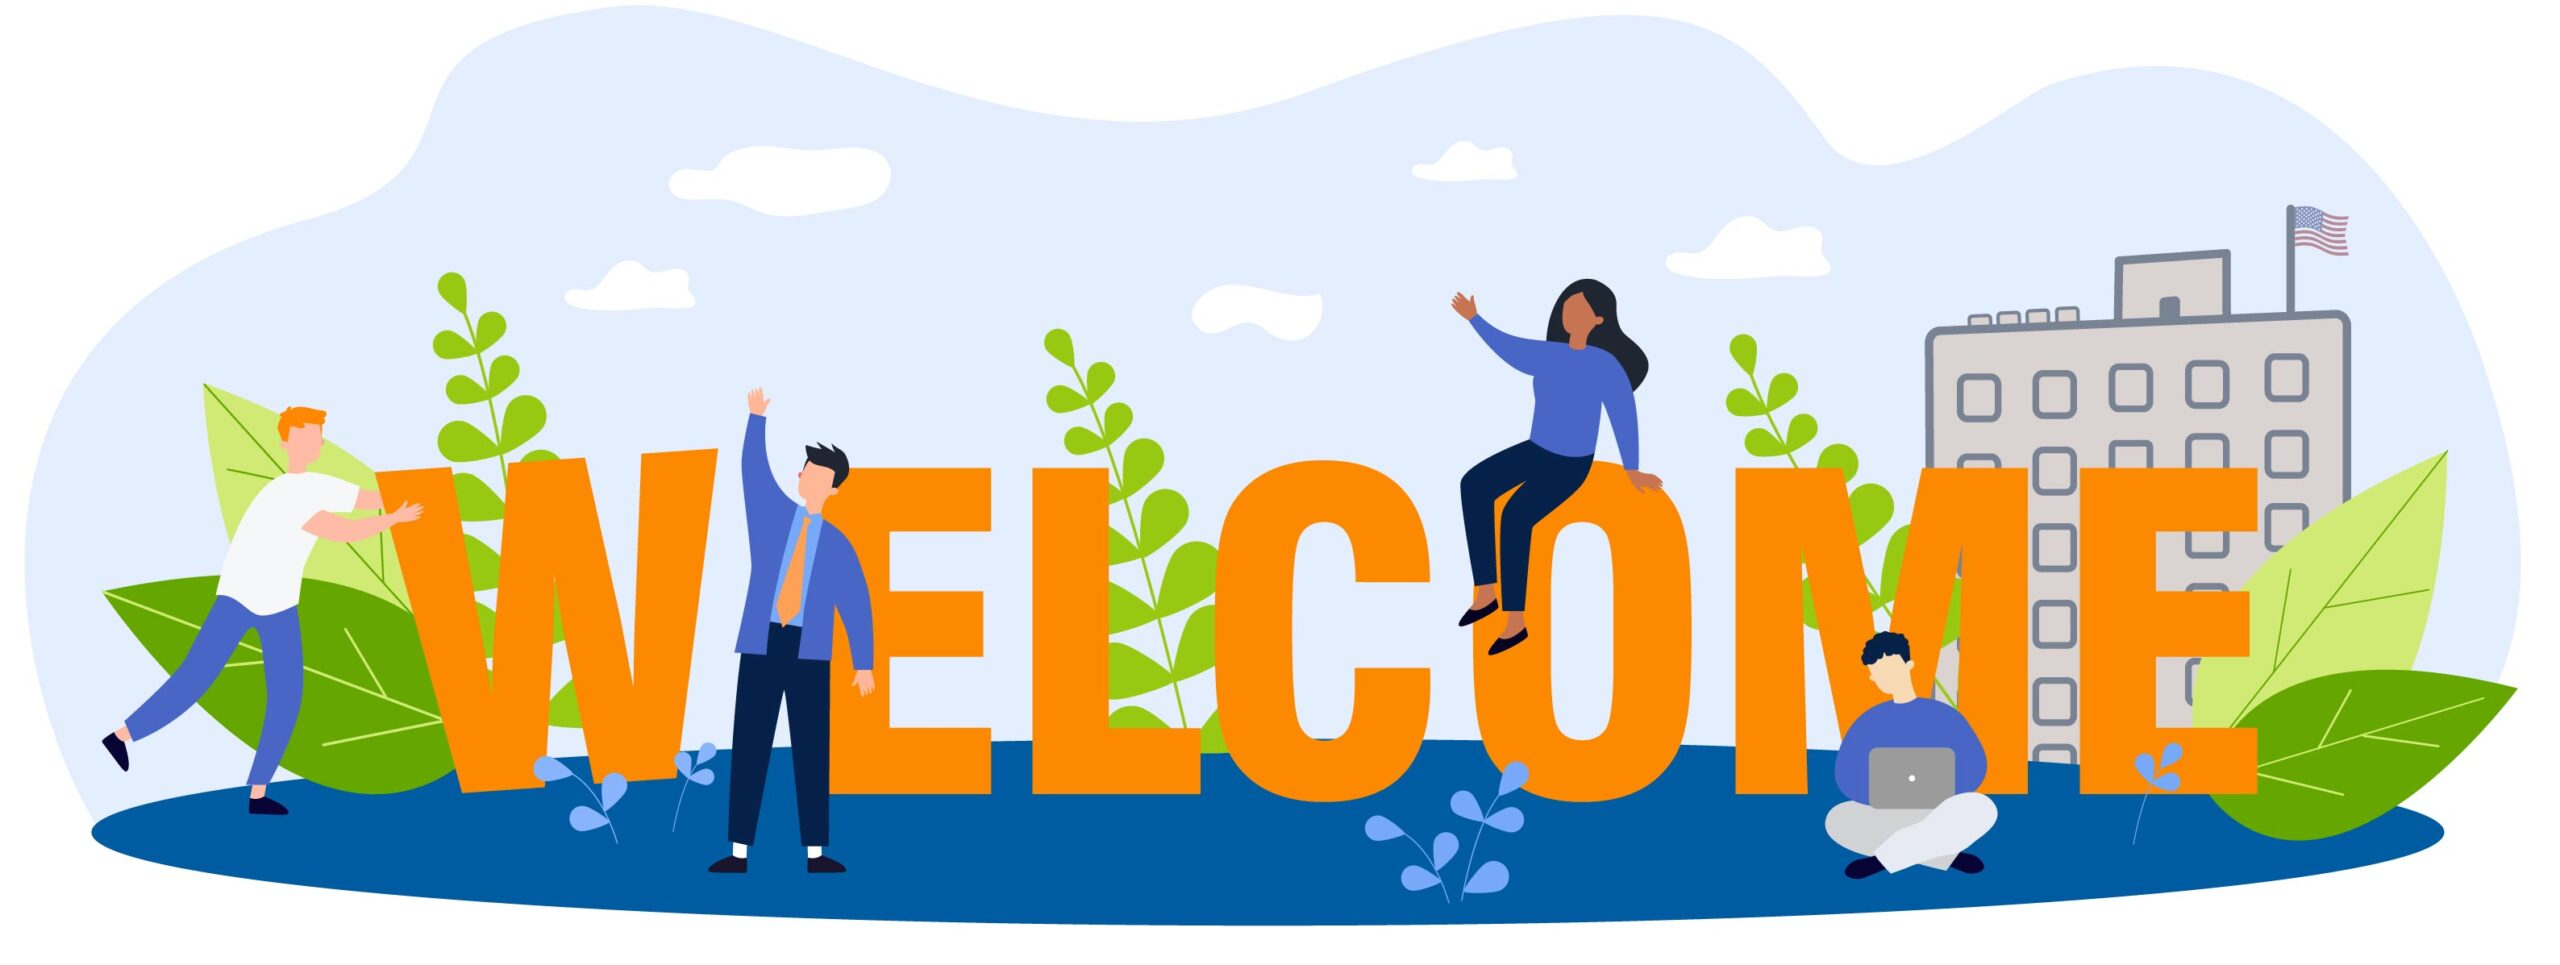 Illustration of people welcoming you